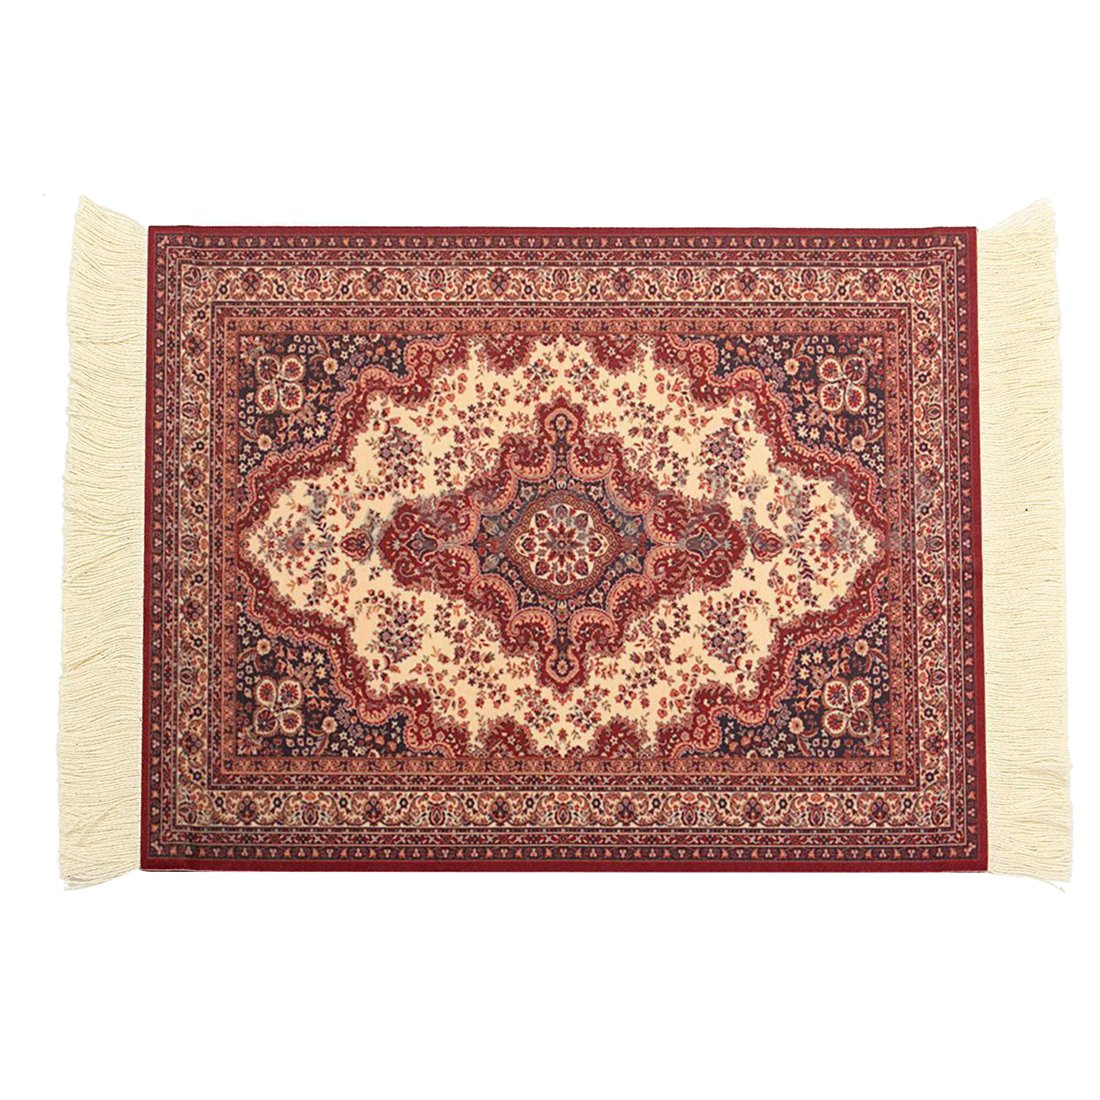 SODIAL(R) 28x18cm Persian Rug Mat Mousepad Retro Style Carpet Pattern Mouse Pad Red 106915